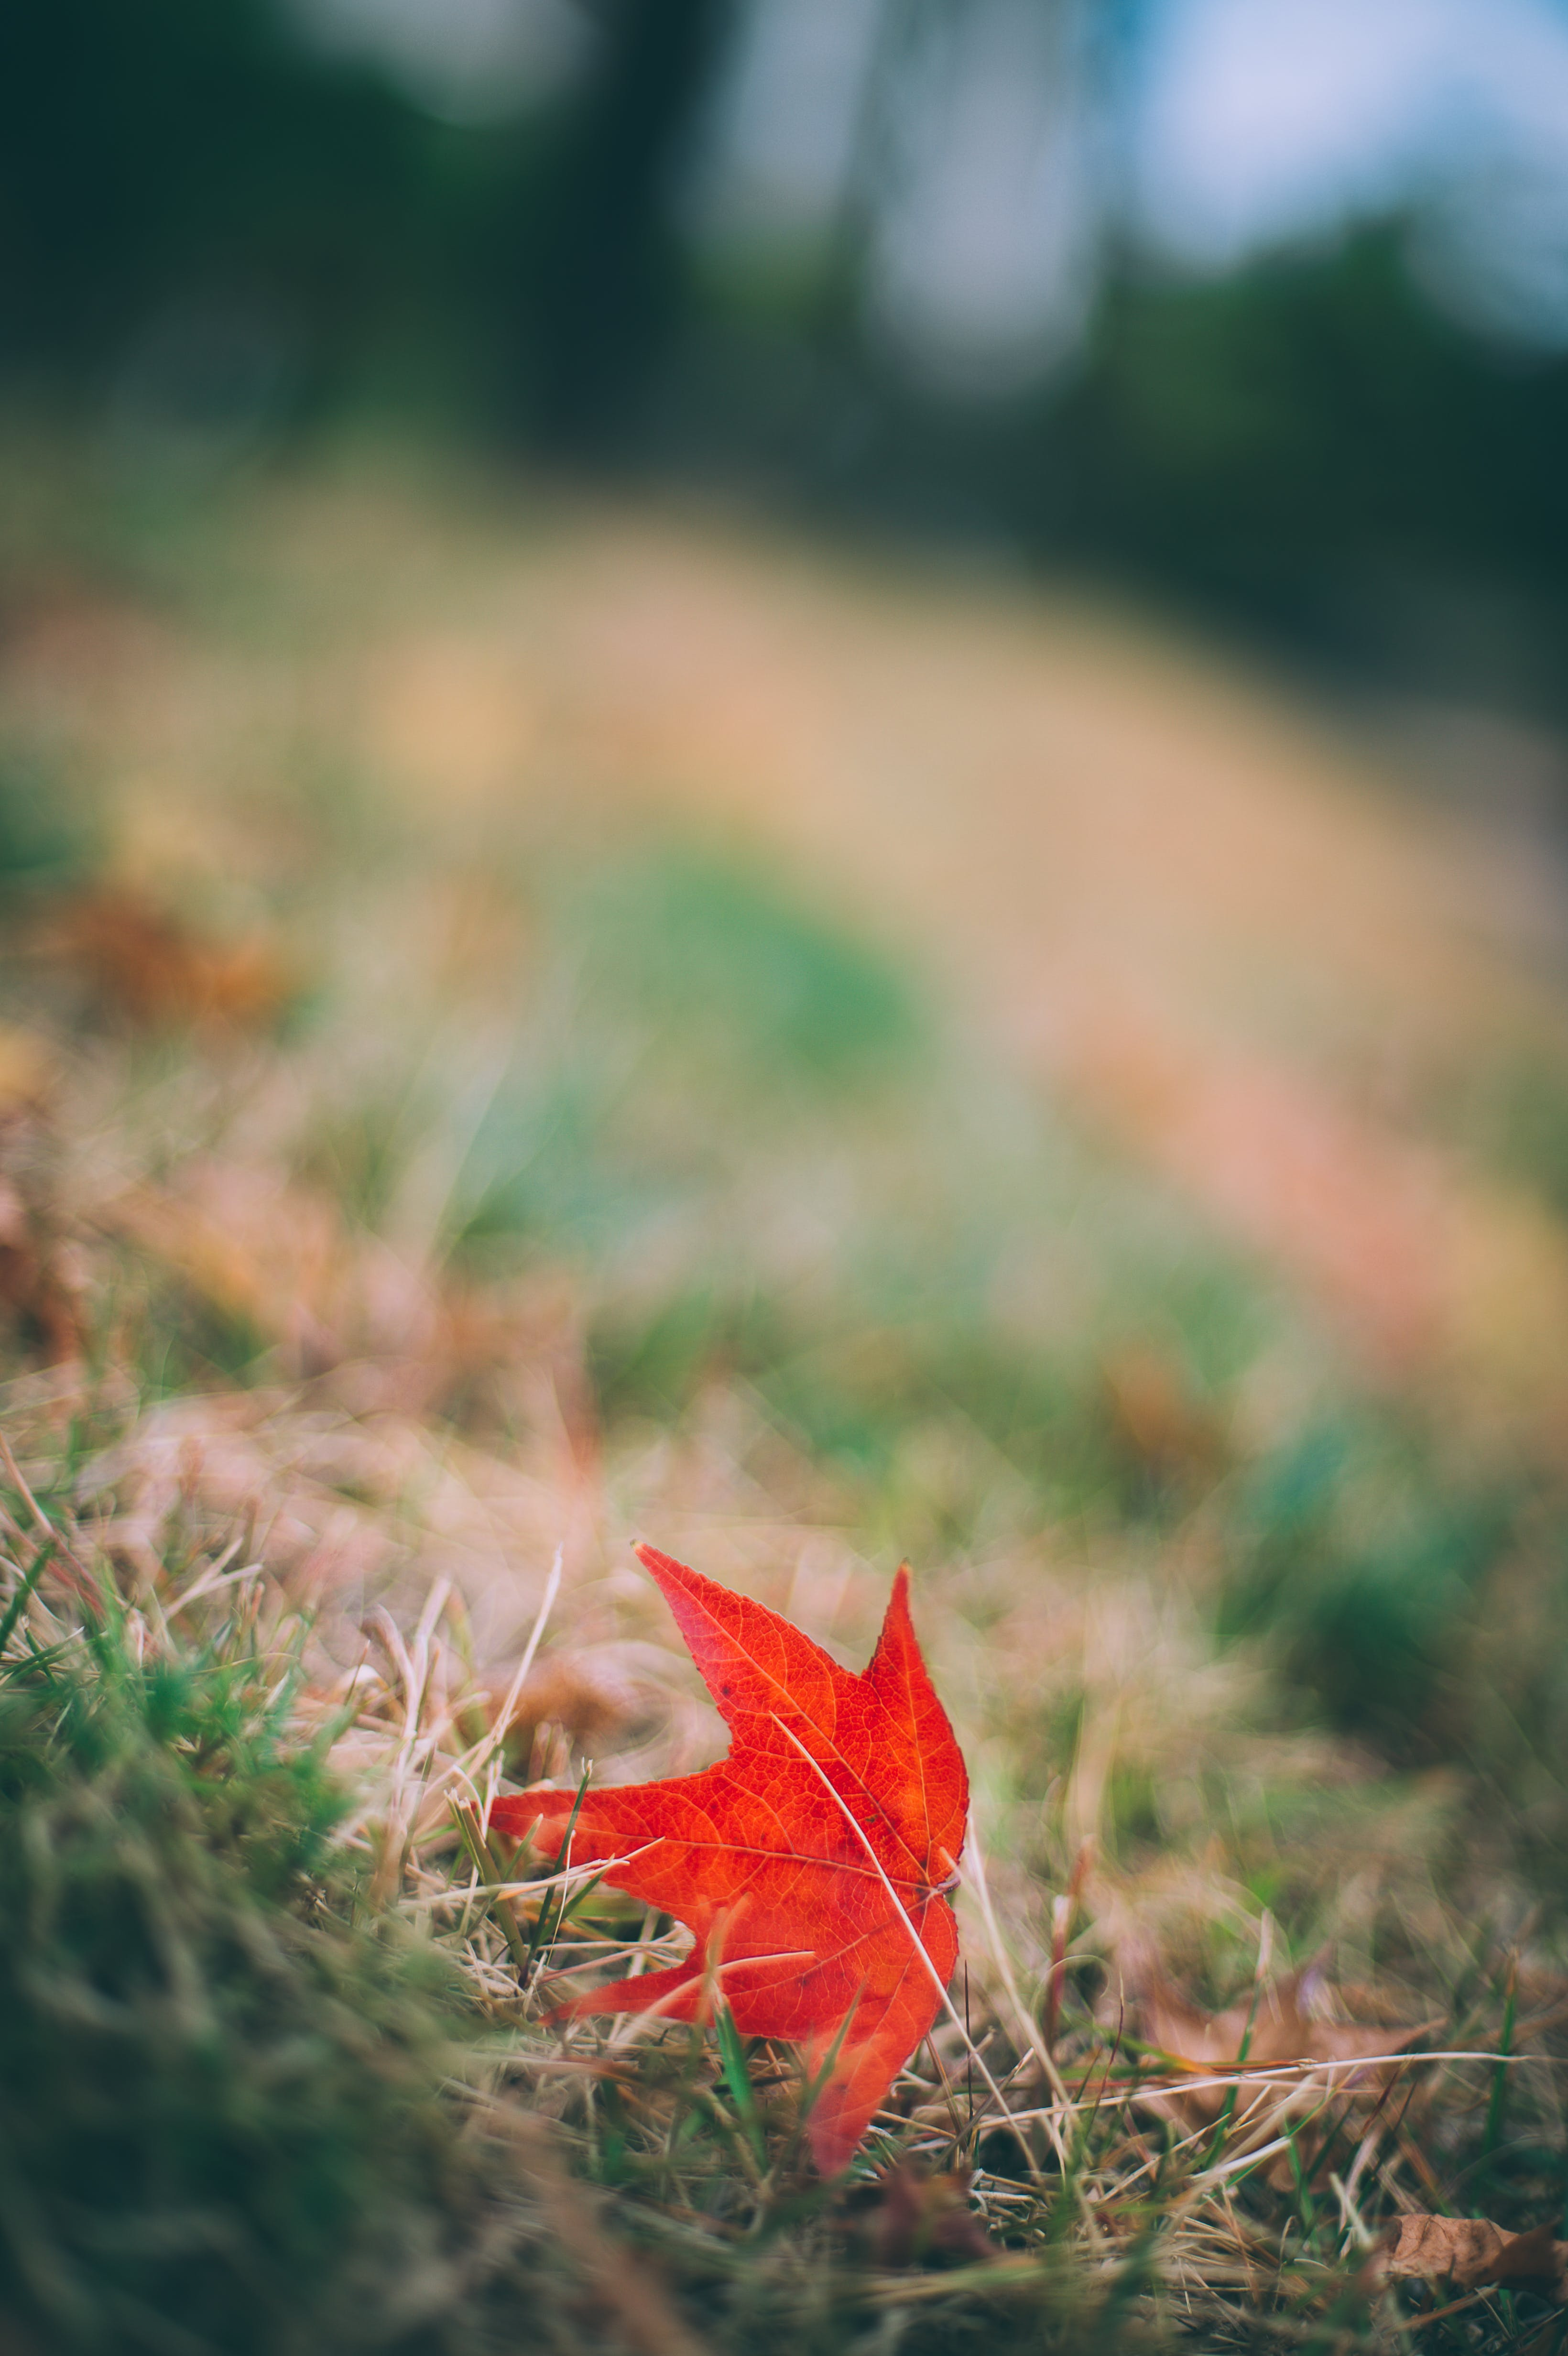 autumn, maple leaves, red